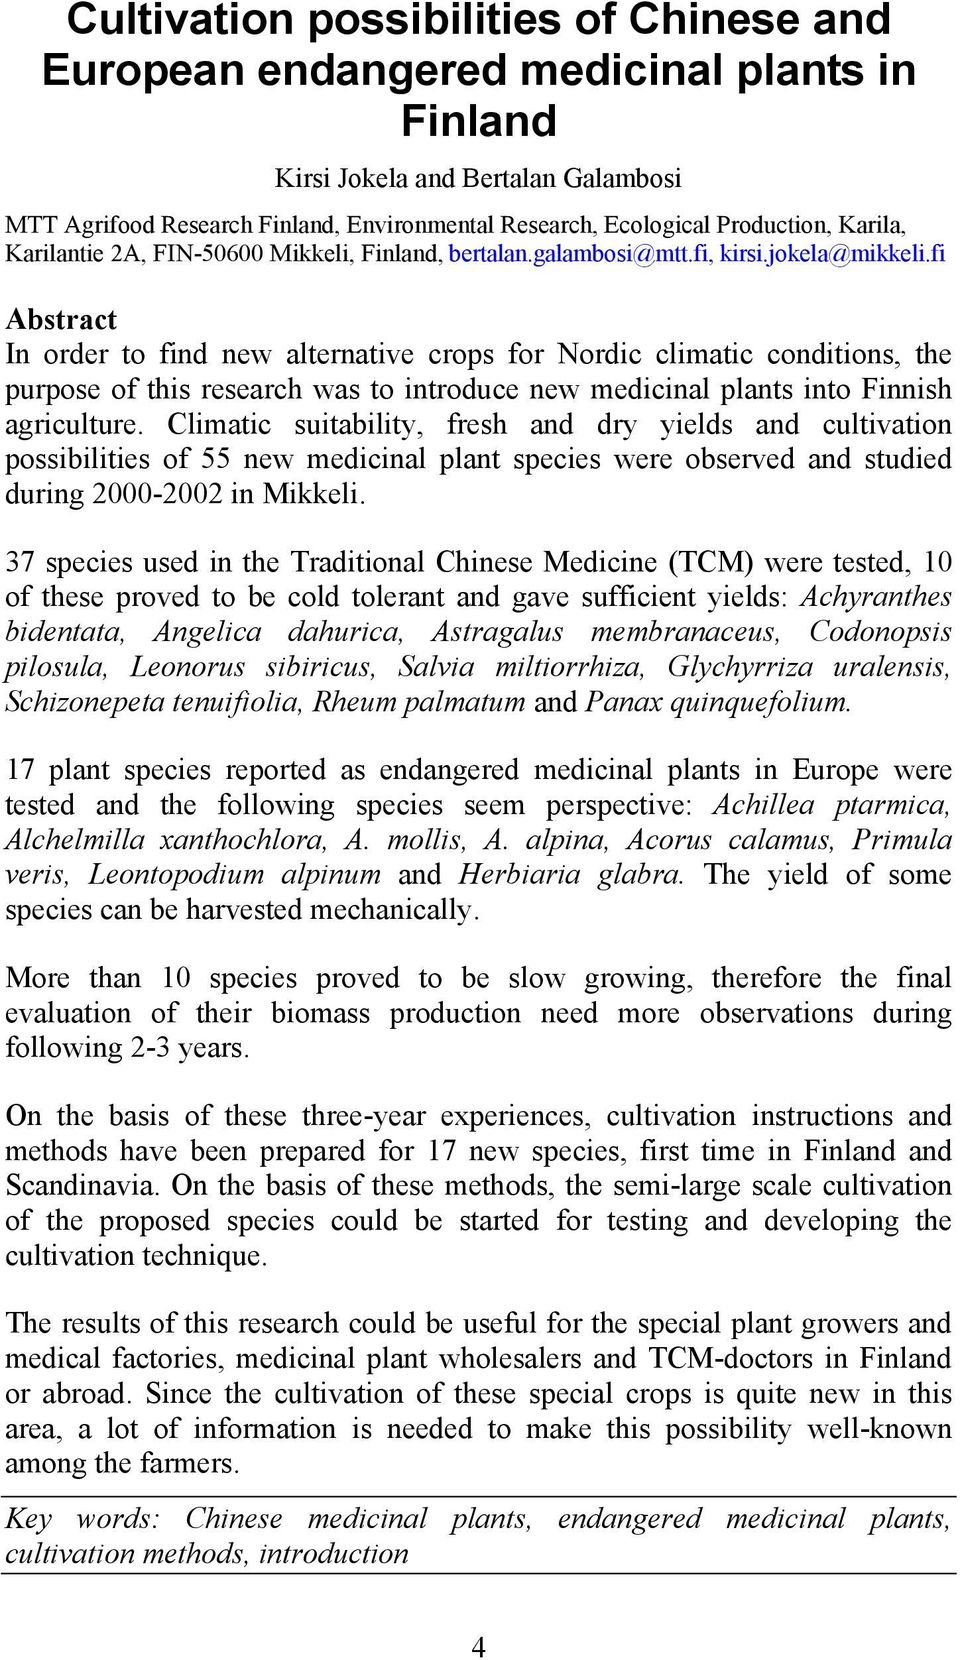 fi Abstract In order to find new alternative crops for Nordic climatic conditions, the purpose of this research was to introduce new medicinal plants into Finnish agriculture.